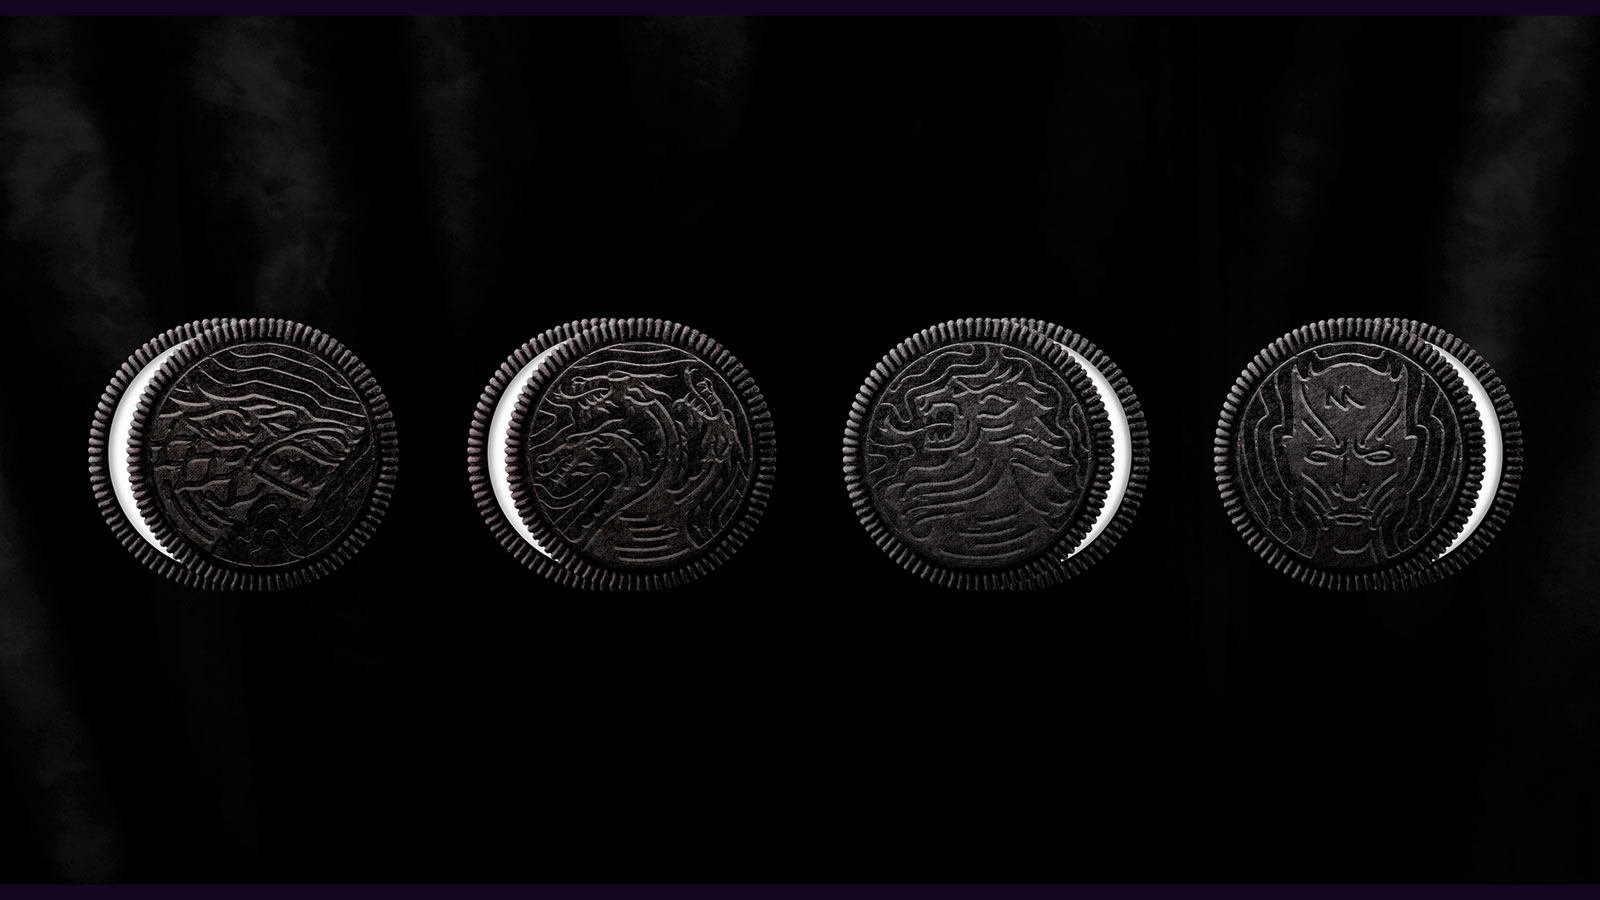 Oreo and HBO teamed up for the most delicious 'Game of Thrones' credits sequence ever